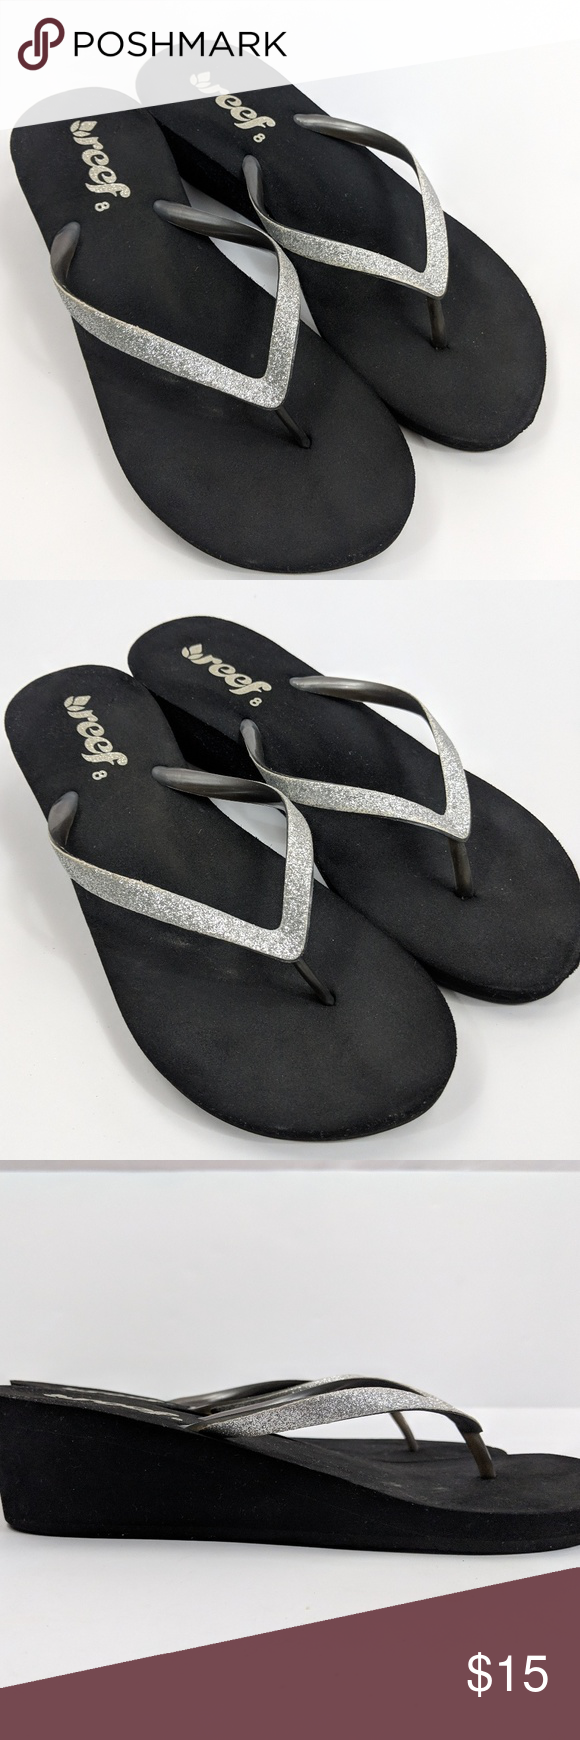 29d883cd319 Reef Krystal Star Silver Glitter Wedge Flip Flops Reef flip flops in size  8. Krystal Star in Black with silver sparkle   glittery straps.